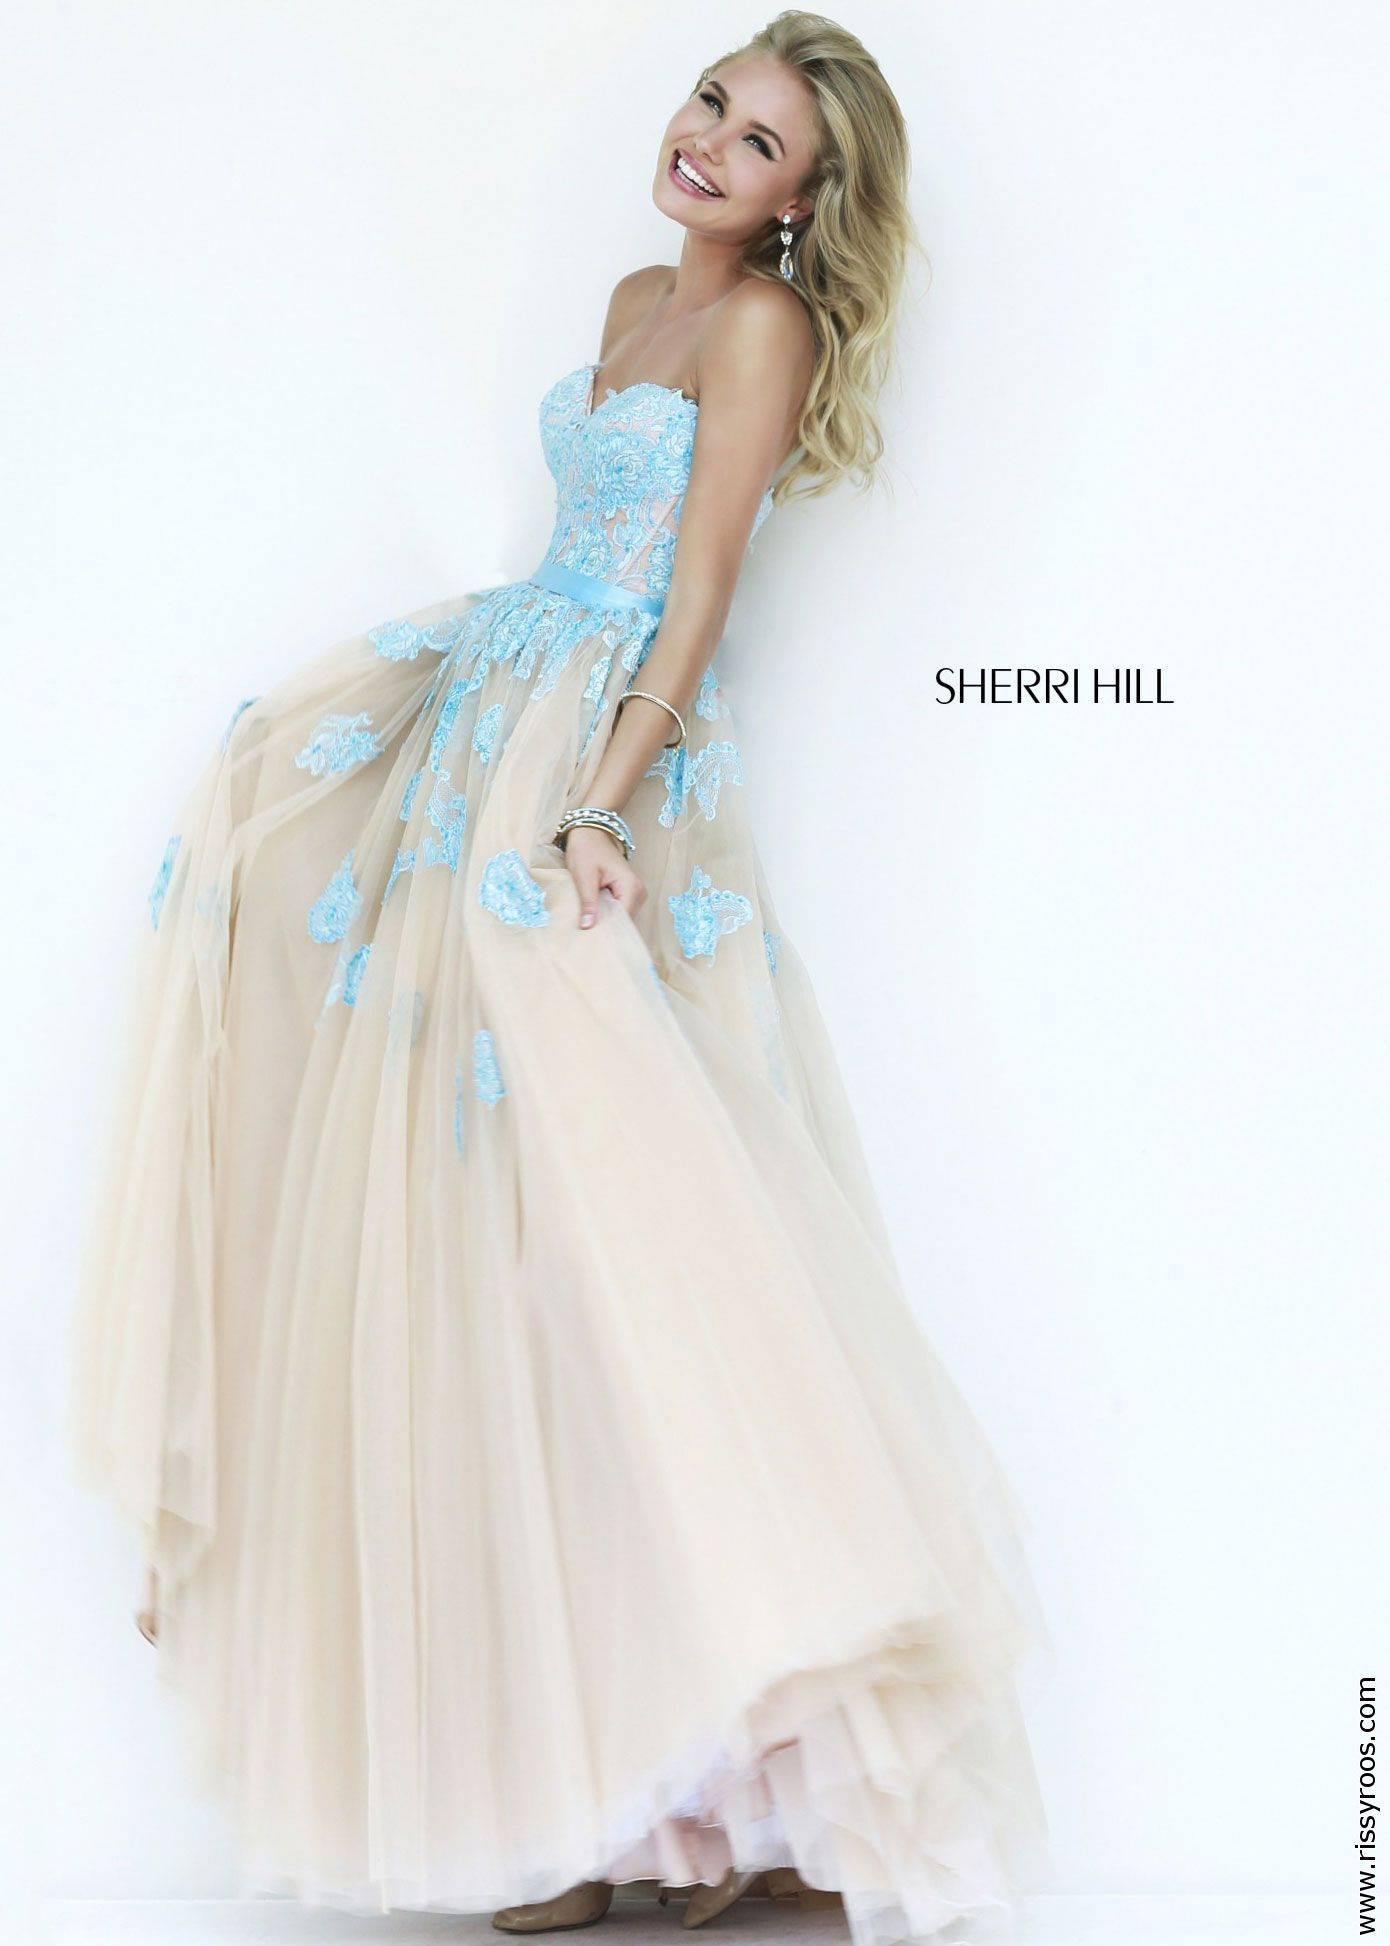 Sherri hill elegant lace ball gown in light blue and nude